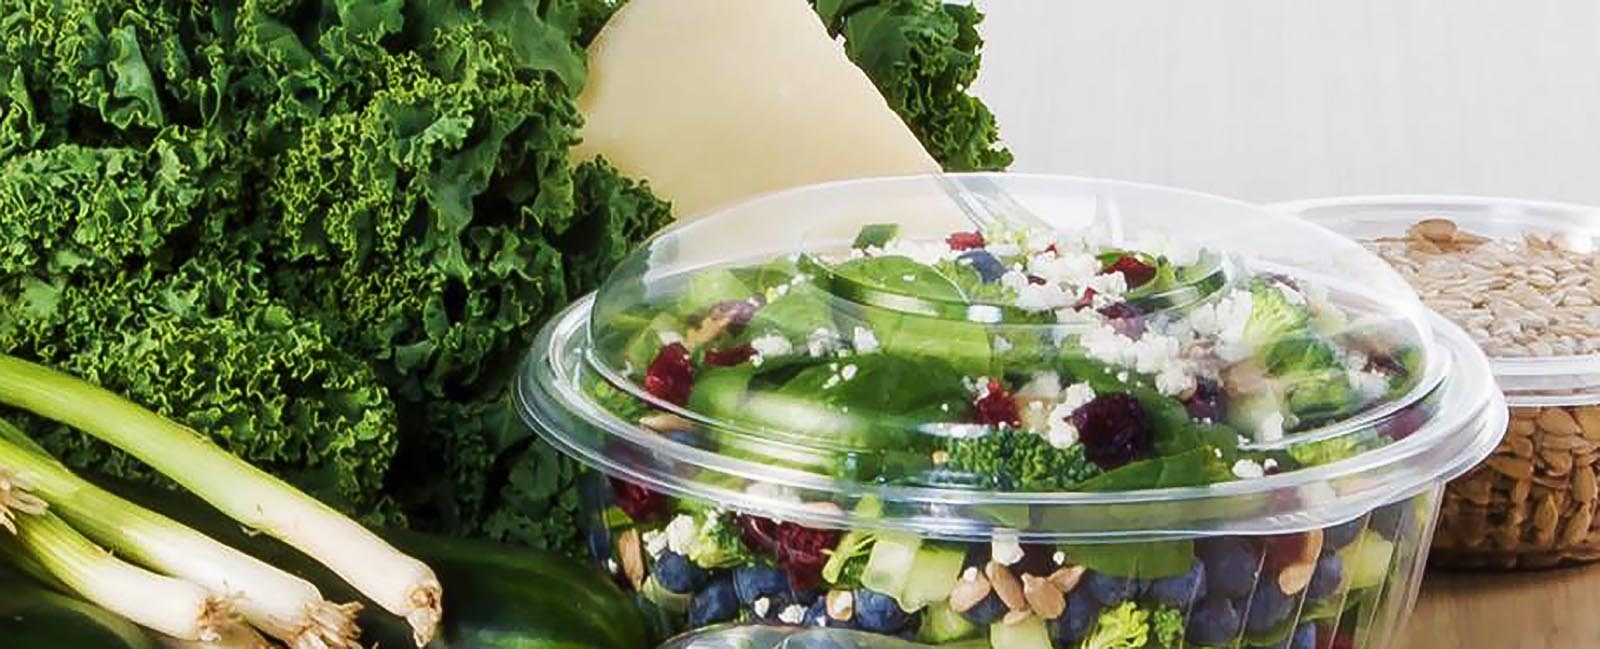 Salad in to go container